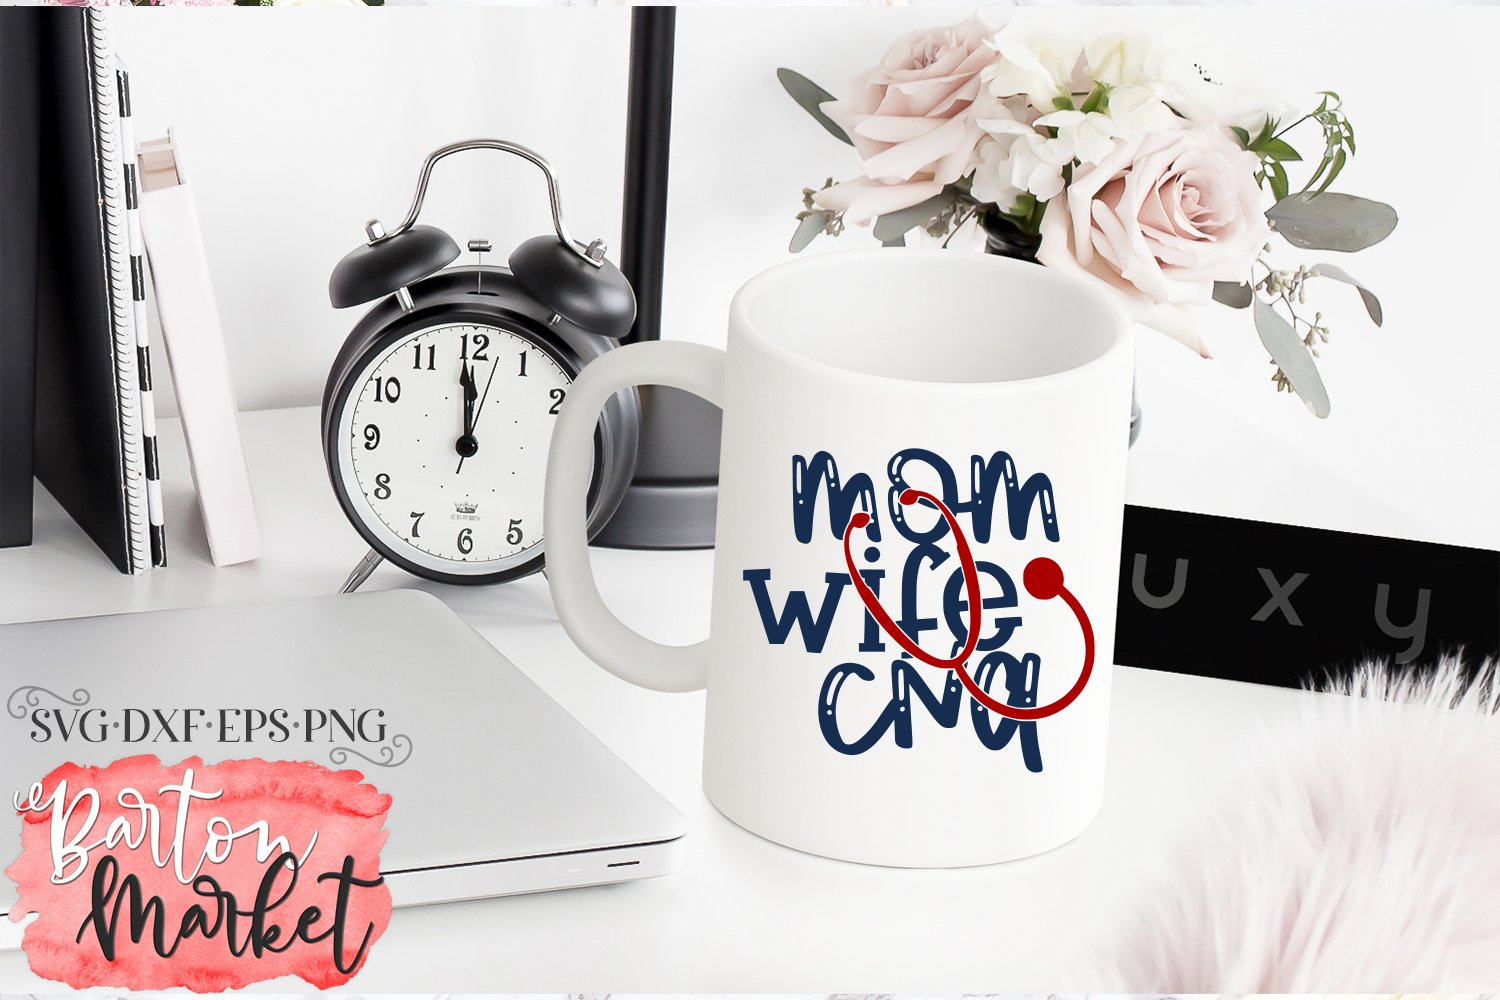 Mom Wife CNA SVG DXF EPS PNG example image 4